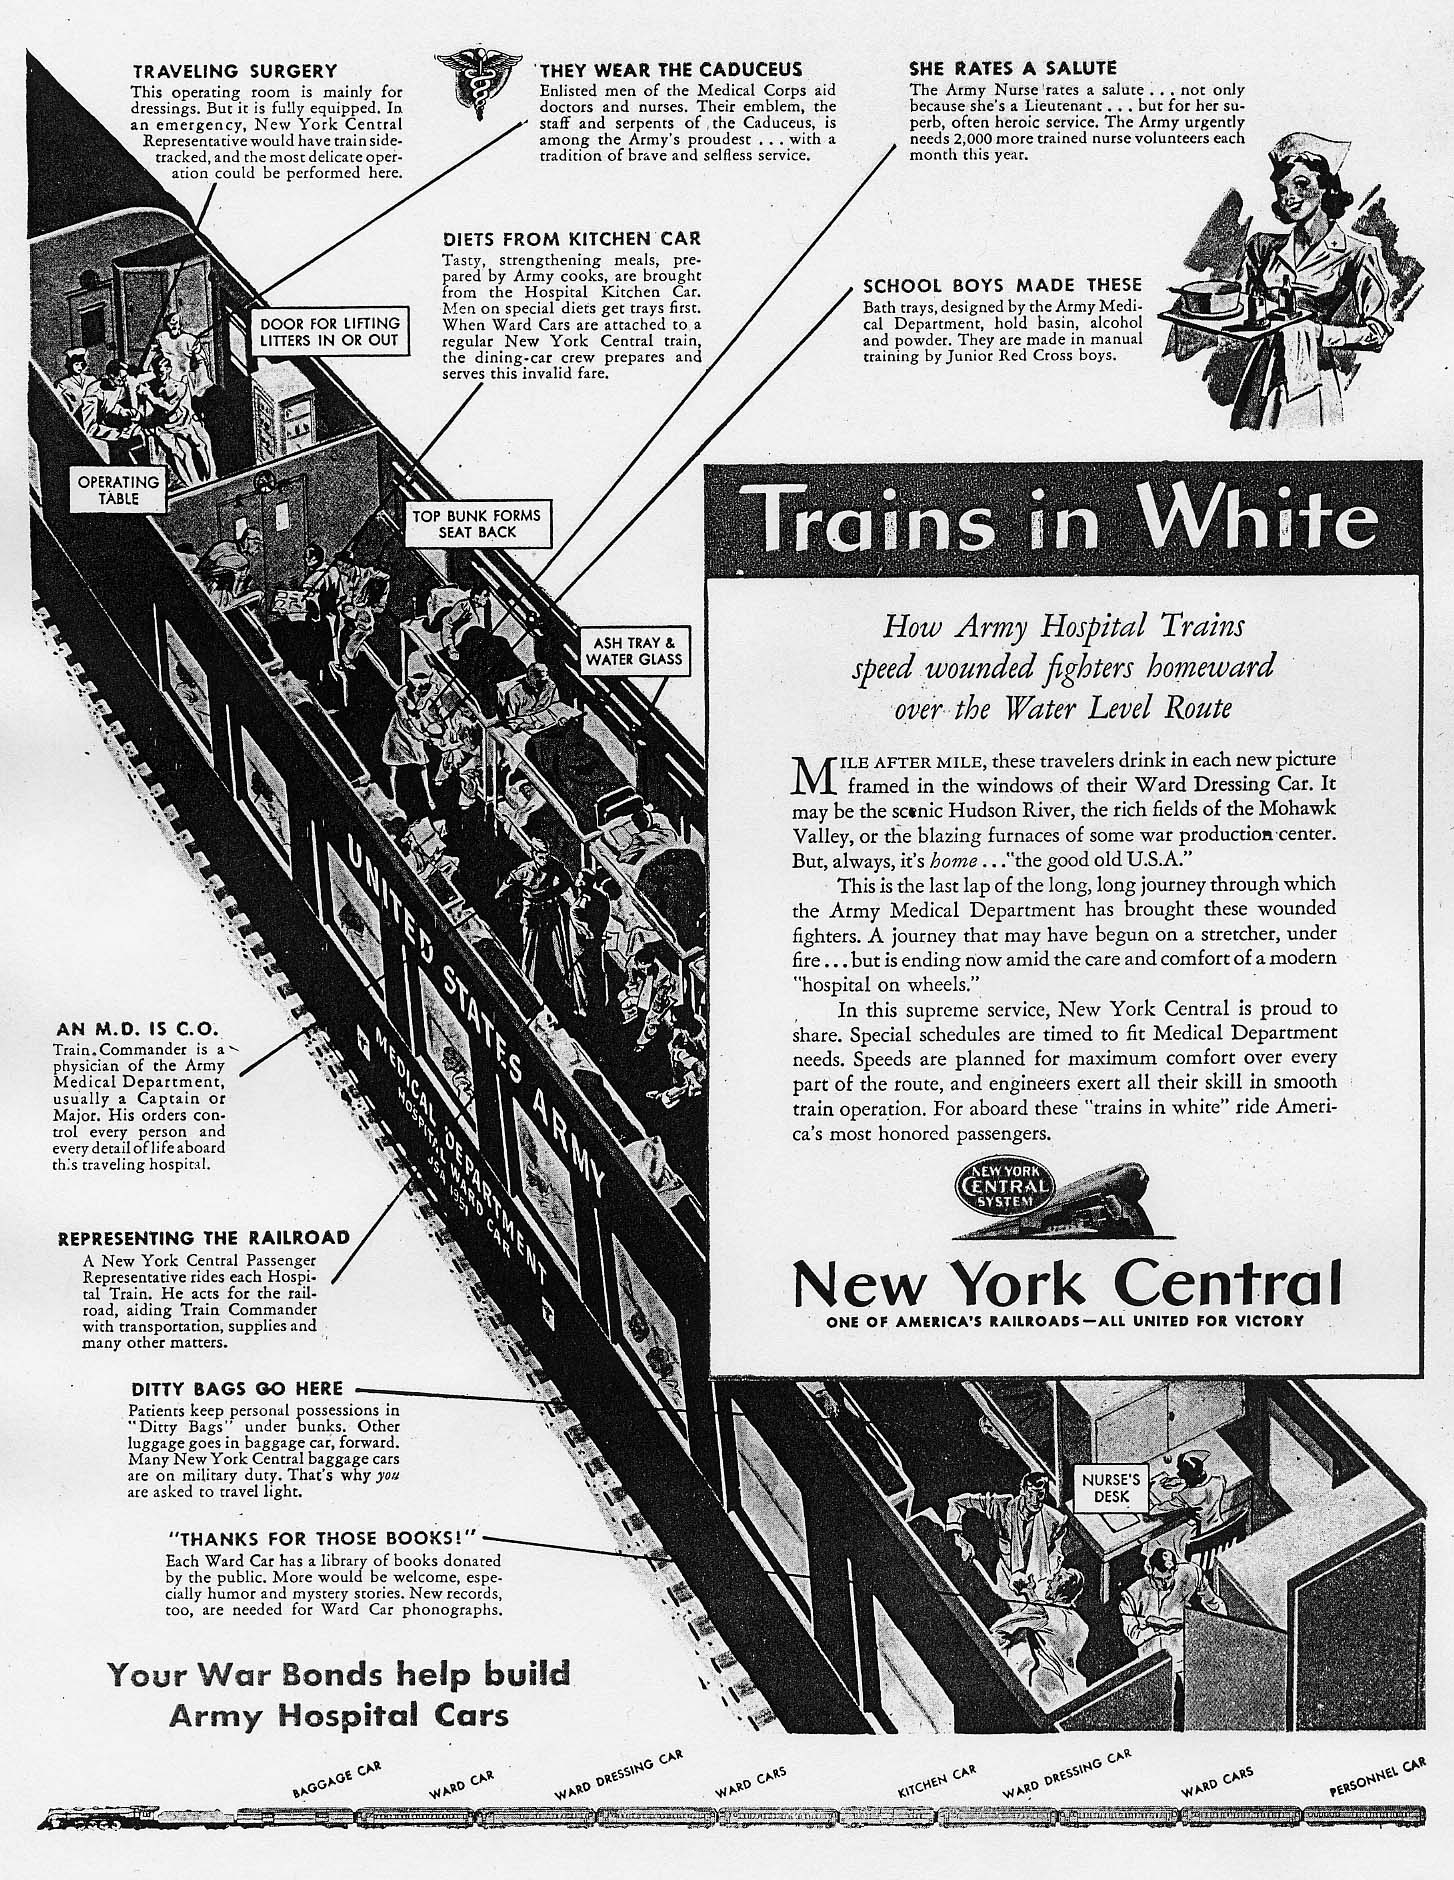 ... Army hospital train. Trains In White ad from New York Central